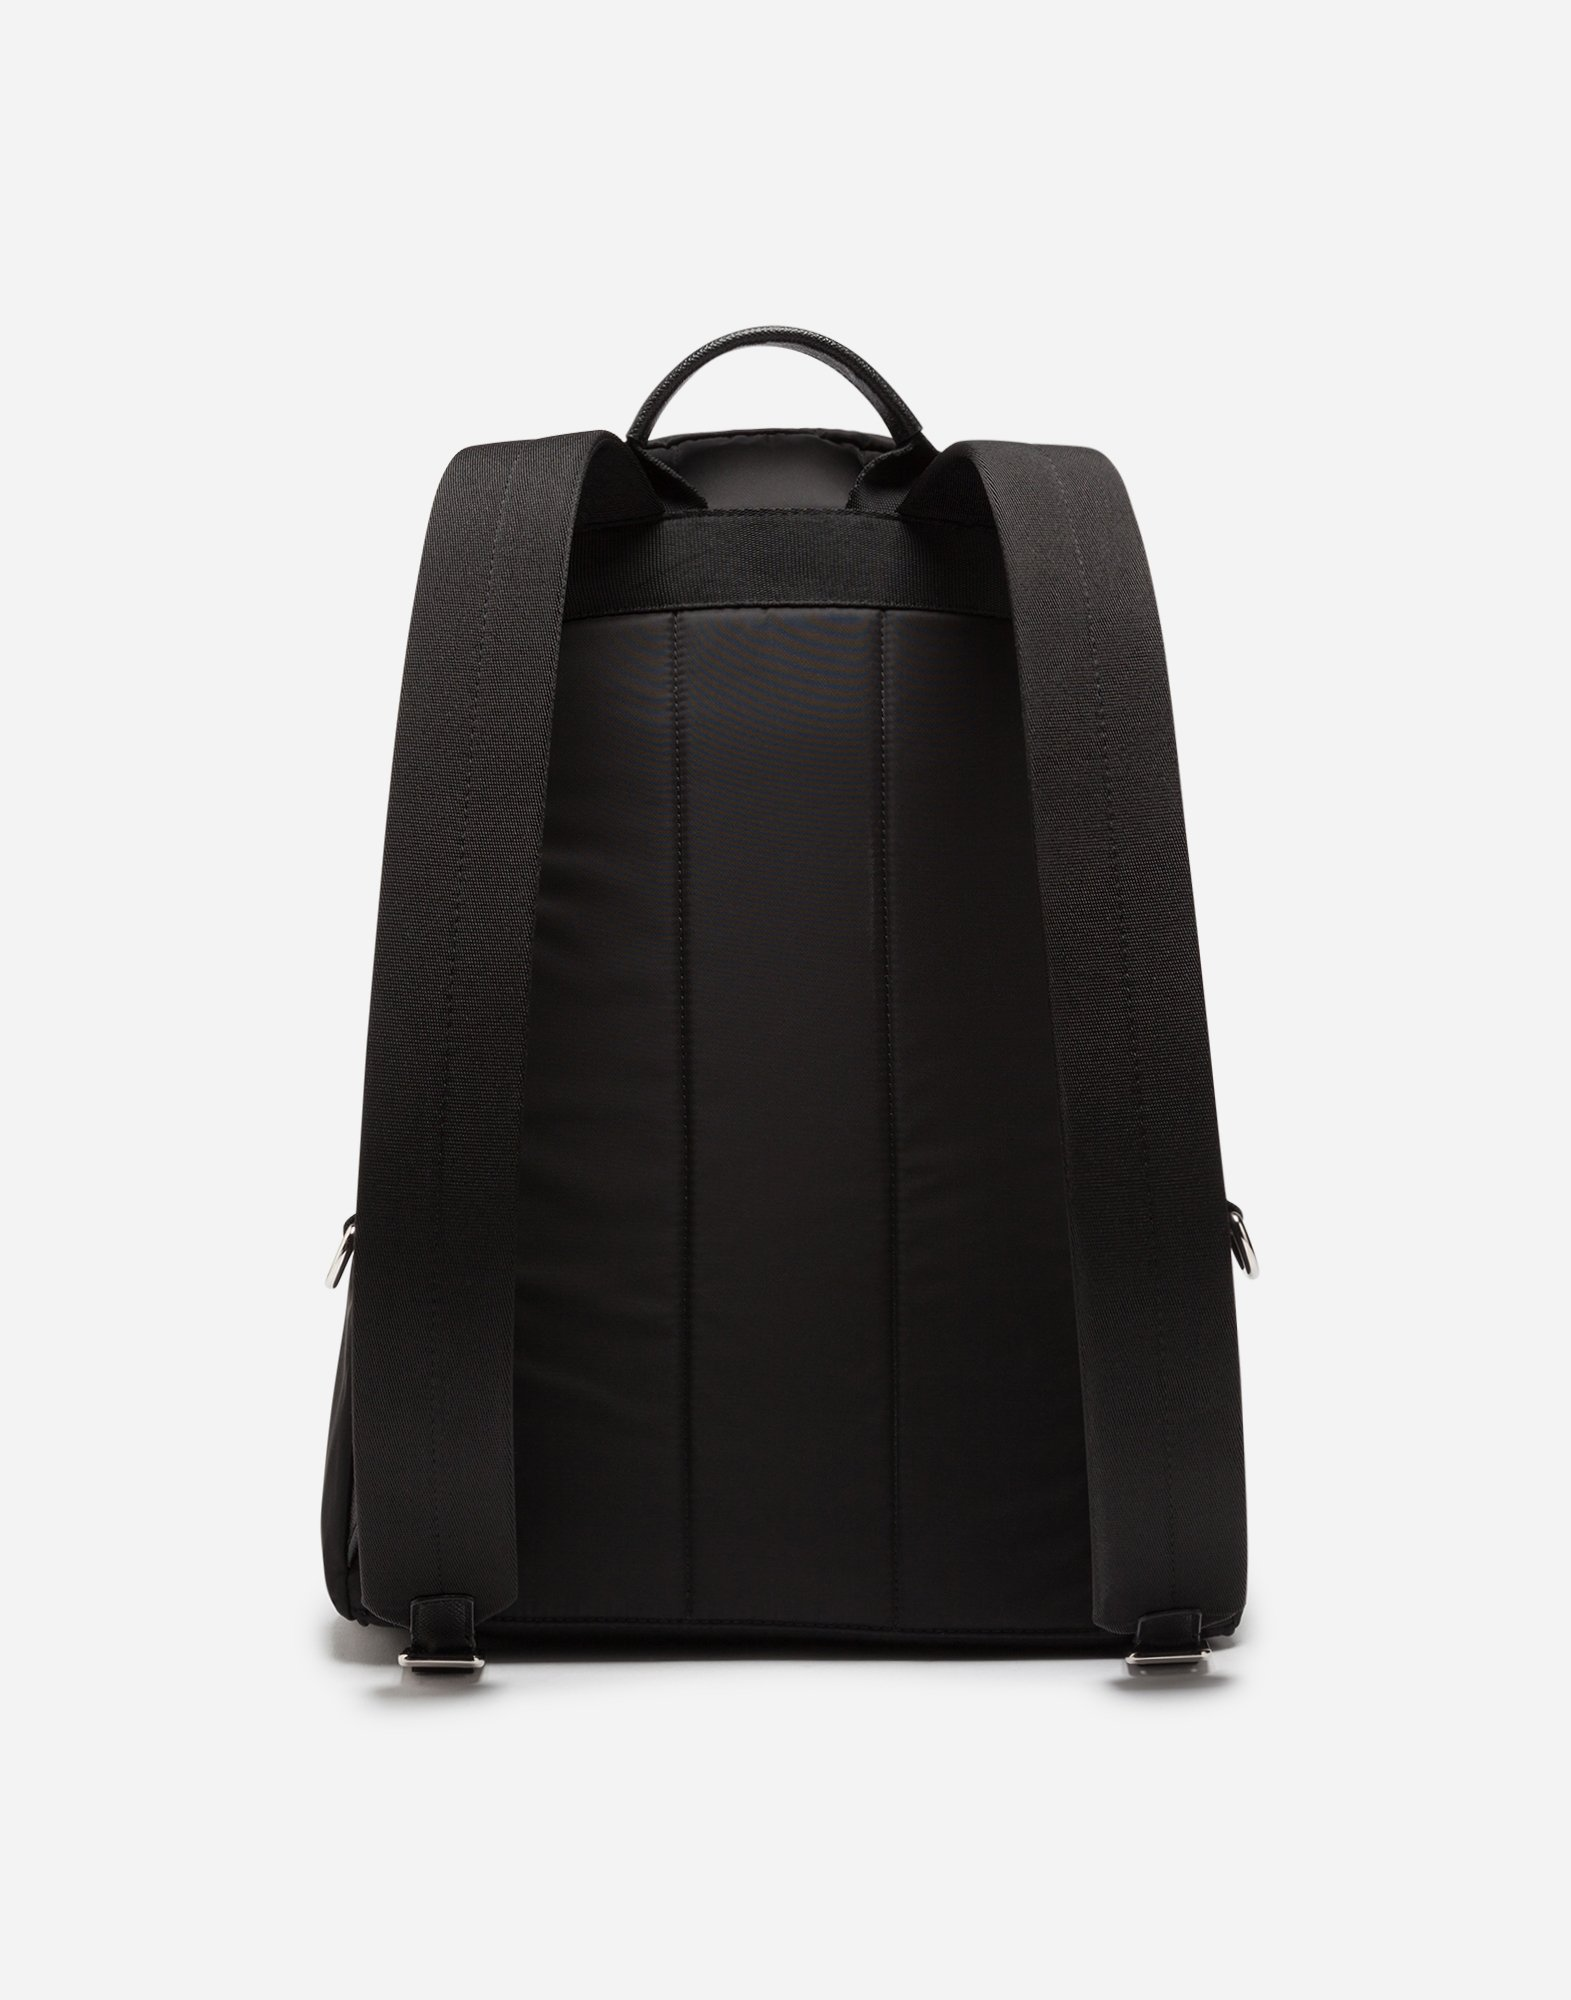 Dolce & Gabbana VULCANO BACKPACK IN NYLON WITH DESIGNERS' PATCHES